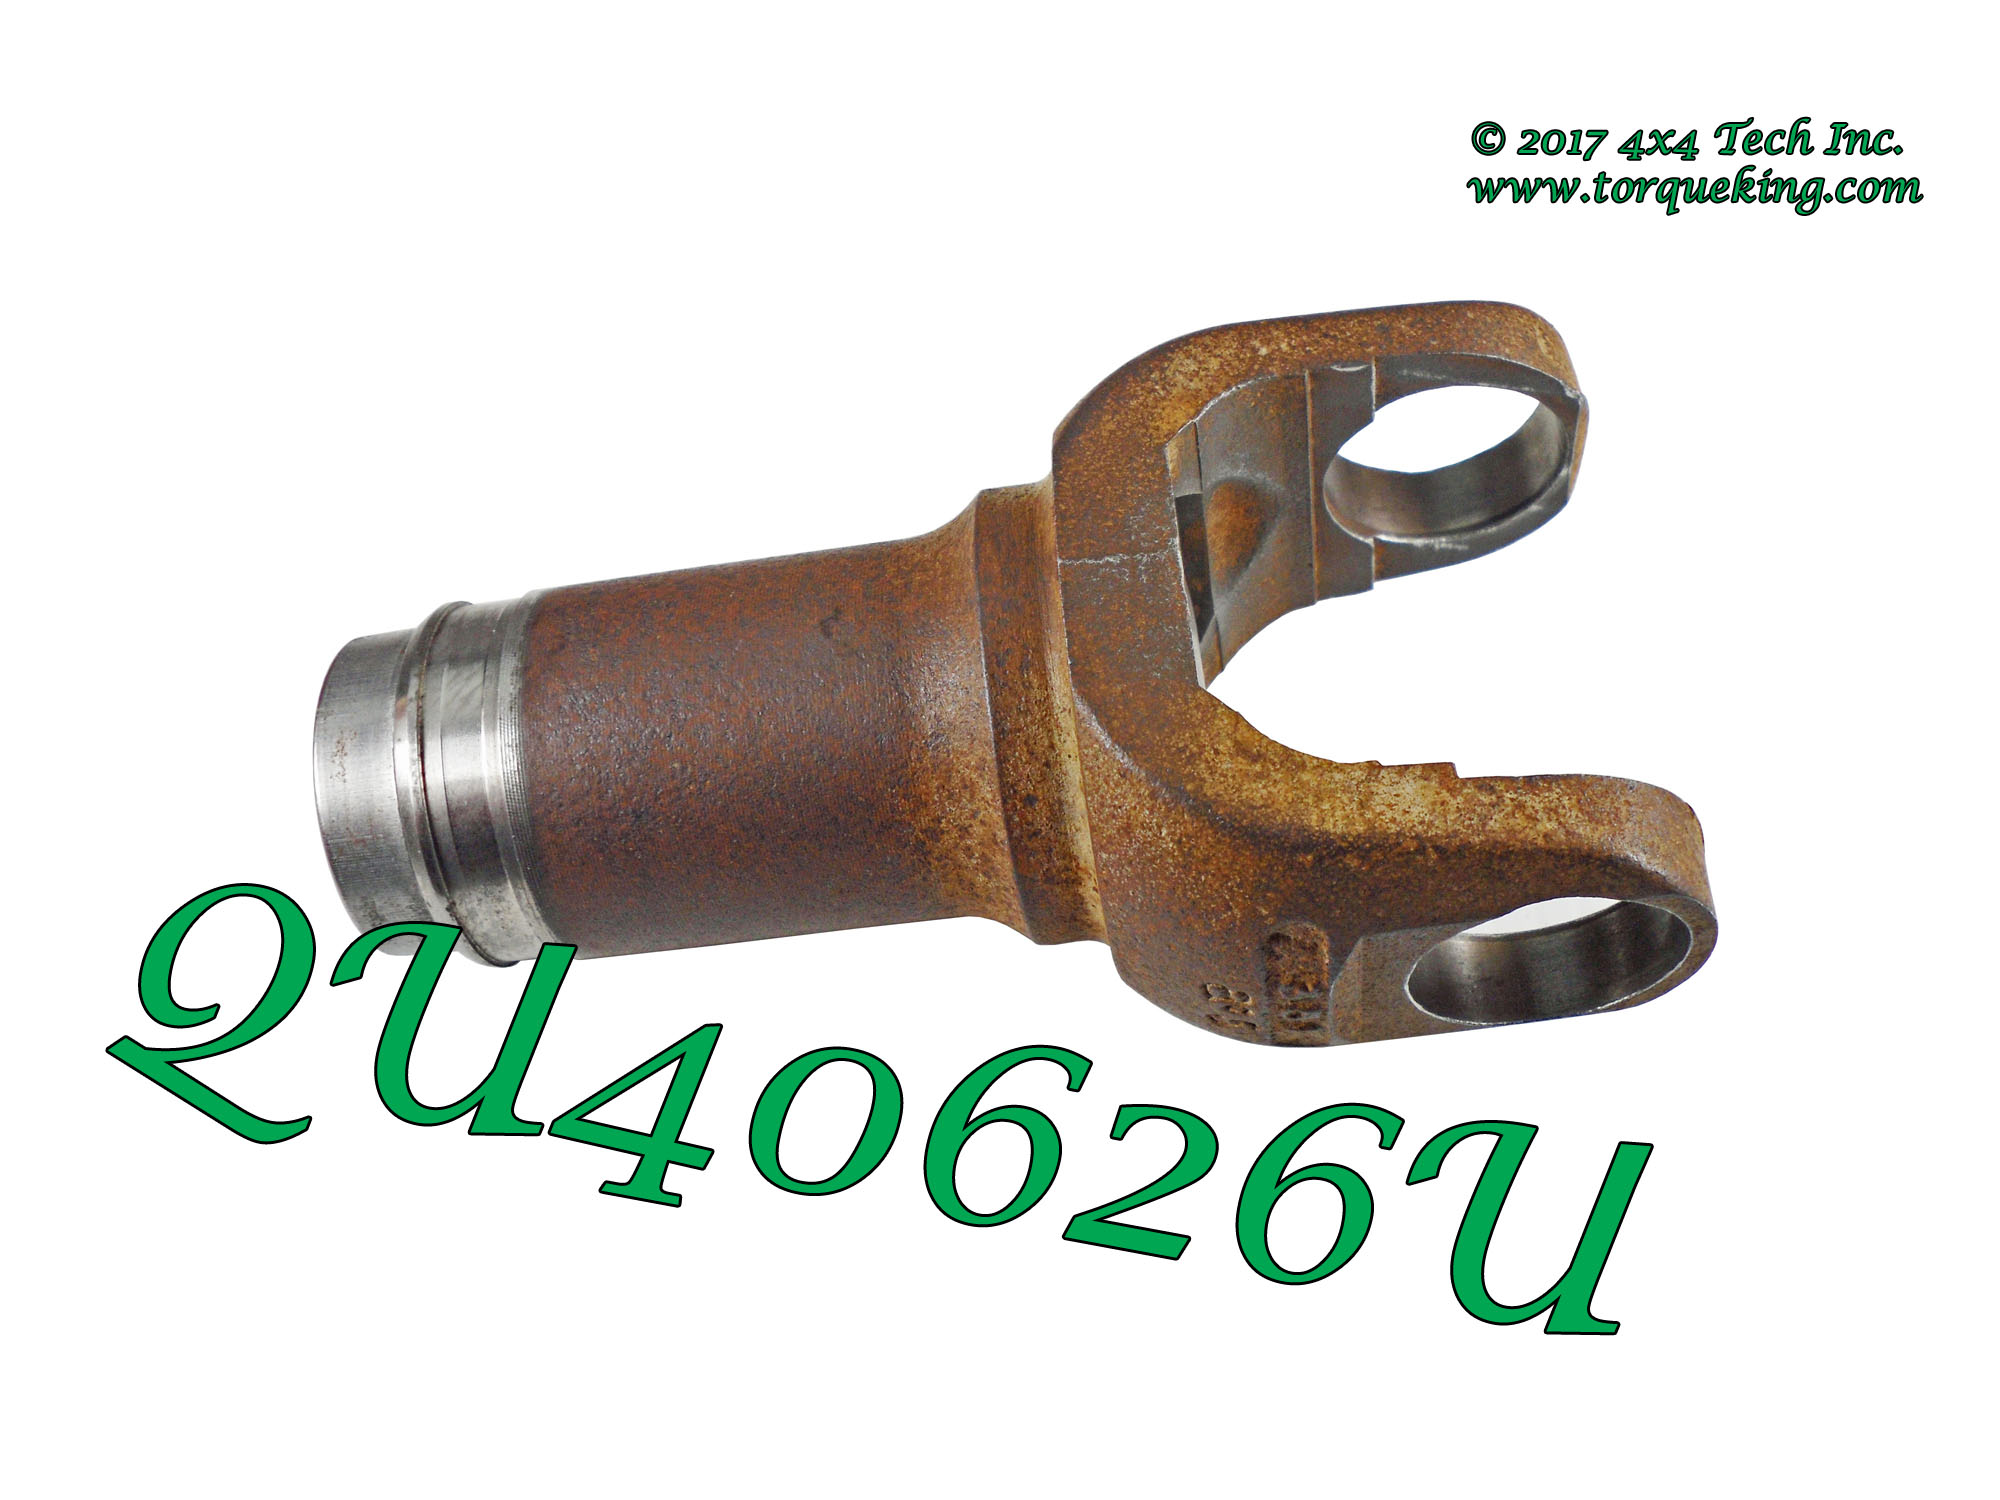 Qu40626 1982 5 1996 non greaseable ford dana 44ifs right axle shaft slip yoke is a genuine dana original equipment replacement splined slip yoke for 1982 to